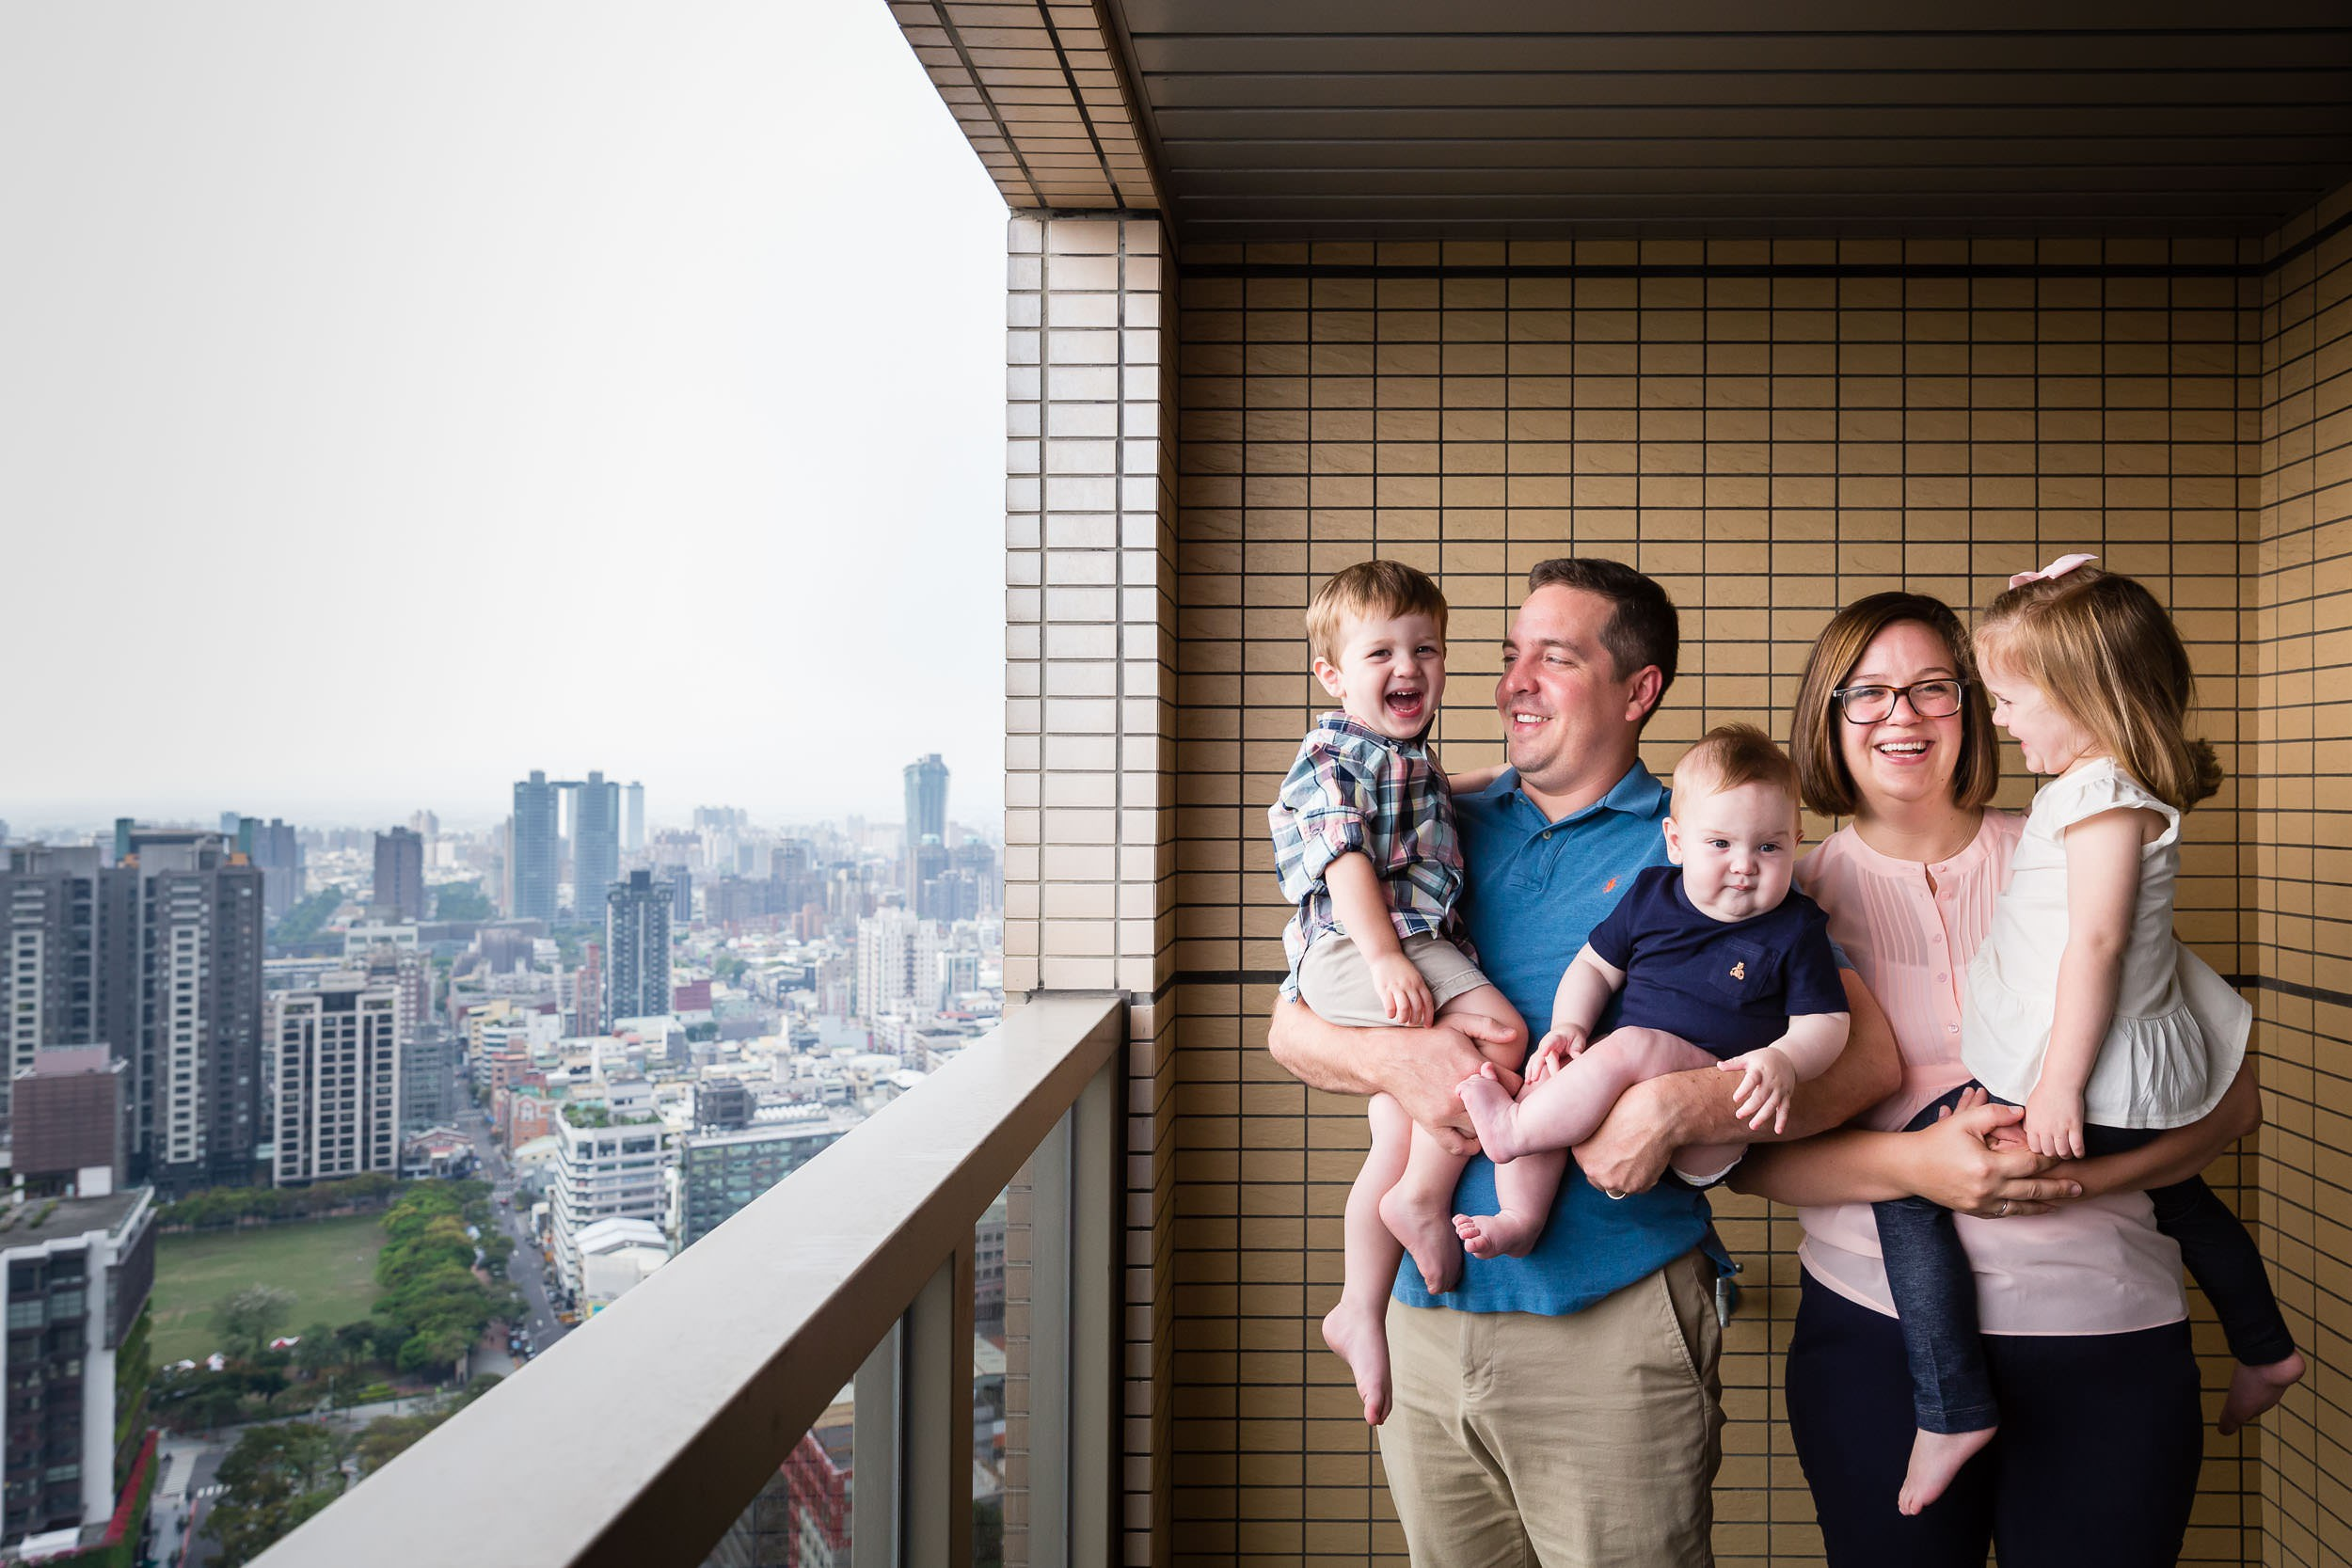 Image of a family of five on their high rise apartment balcony, in Taichung Taiwan, by Rebecca Hunnicutt Farren of Hunnicutt Photography.